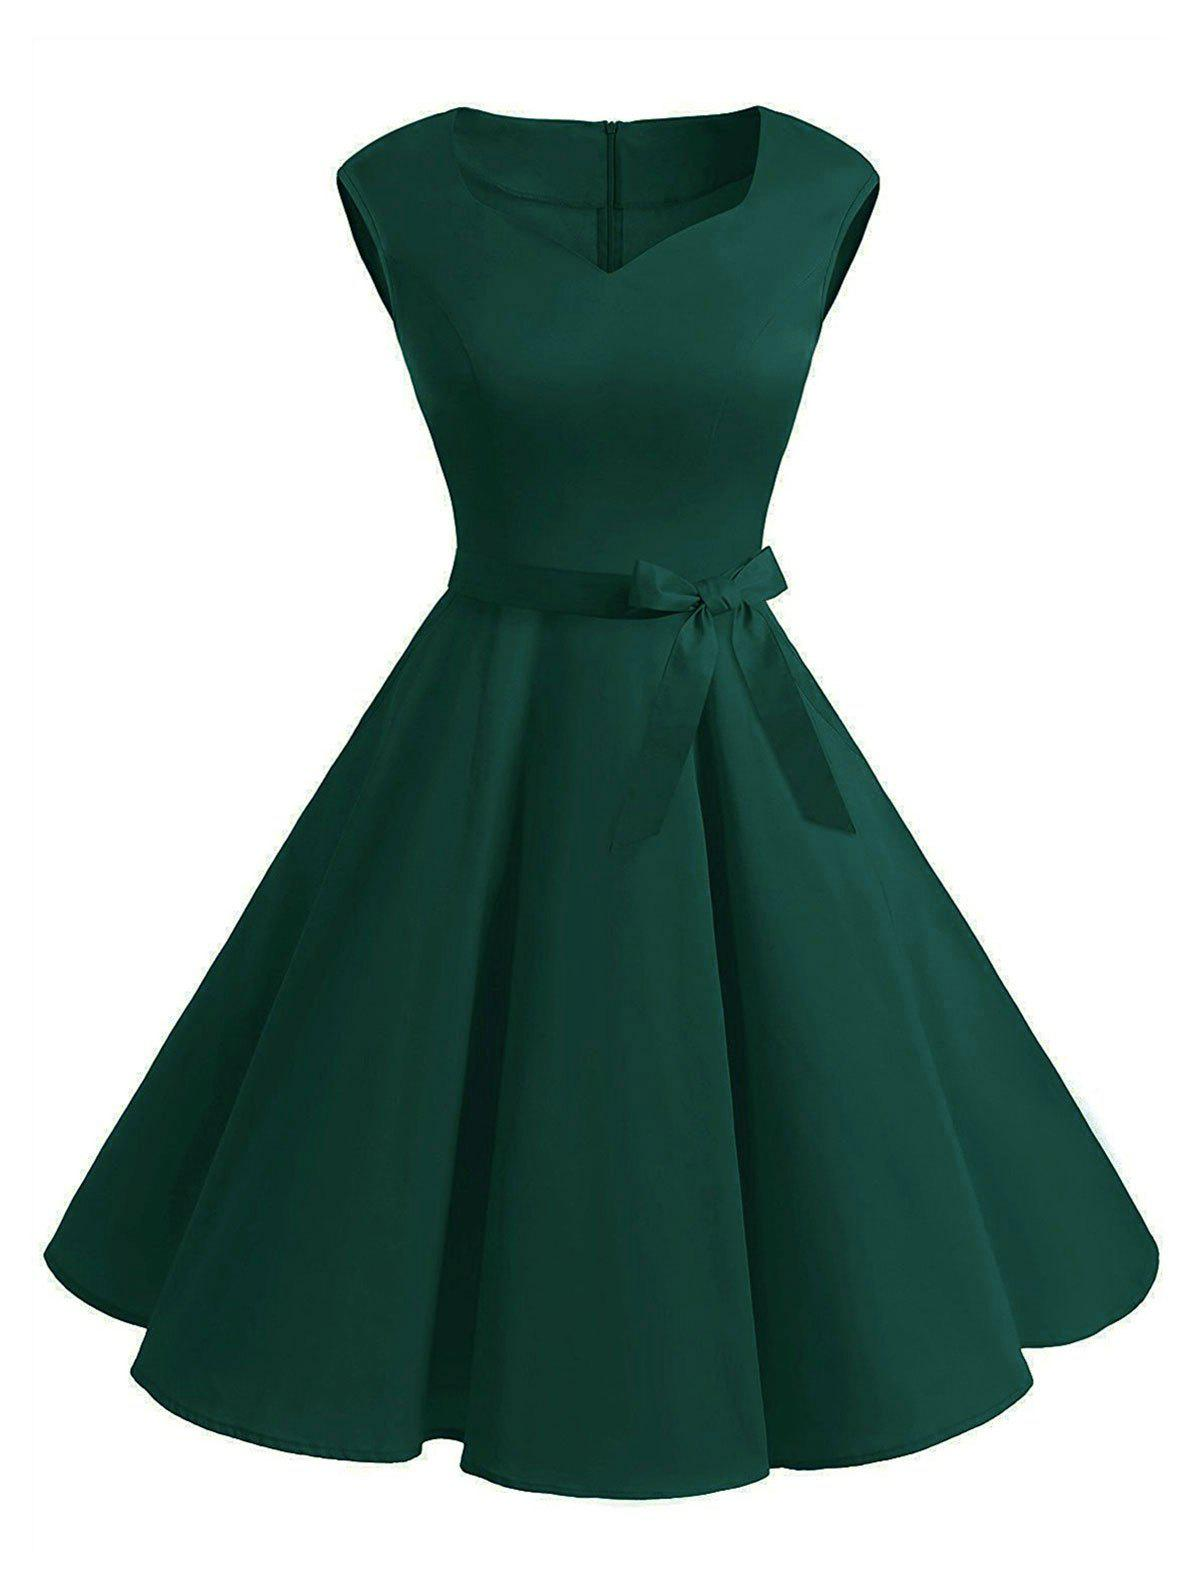 Belted Sweetheart Sleeveless Dress - DEEP GREEN S